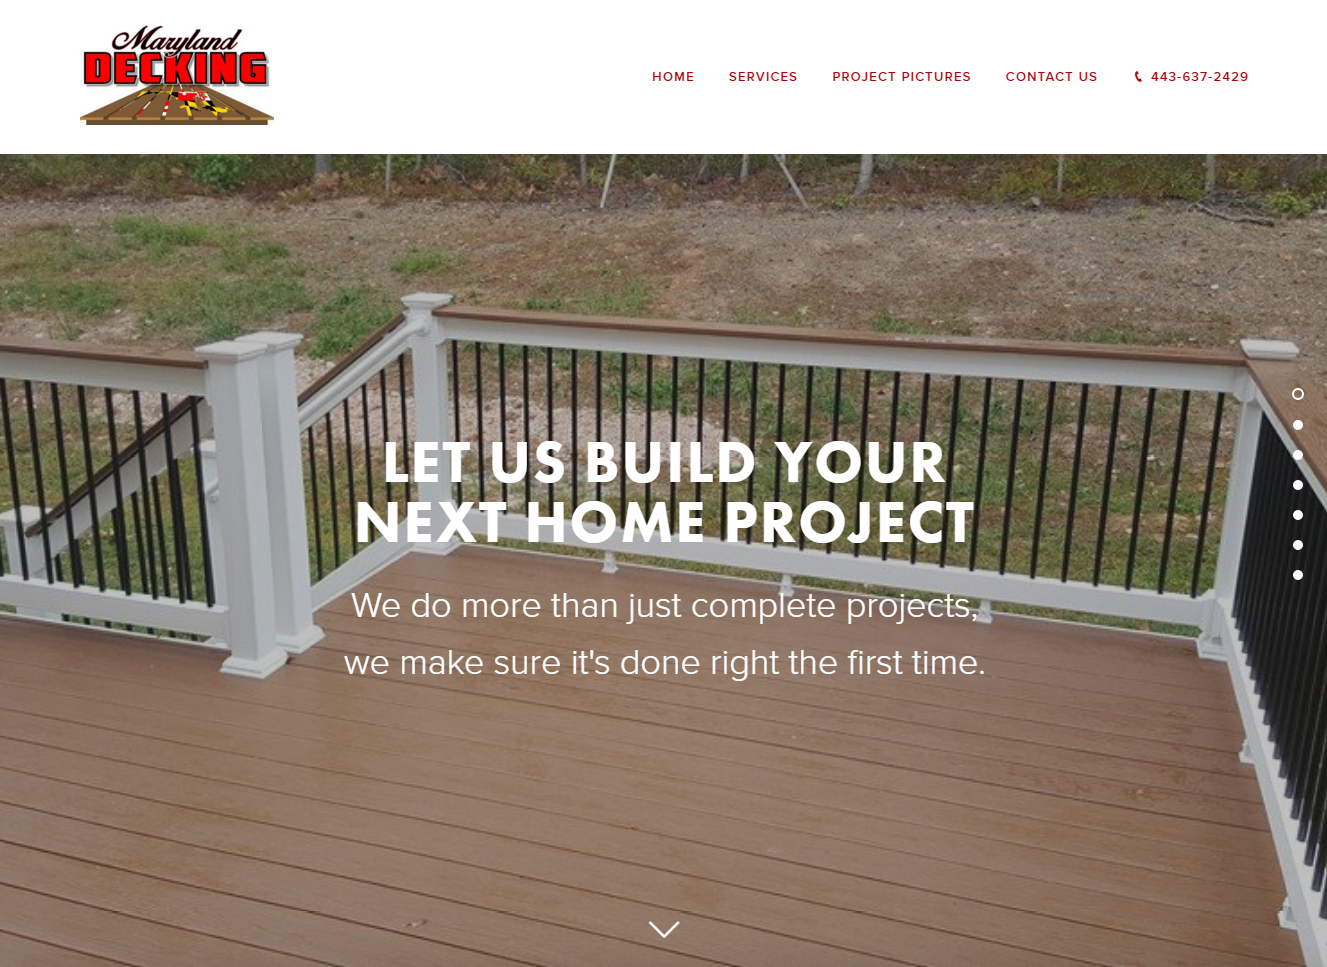 MarylandDecking.com